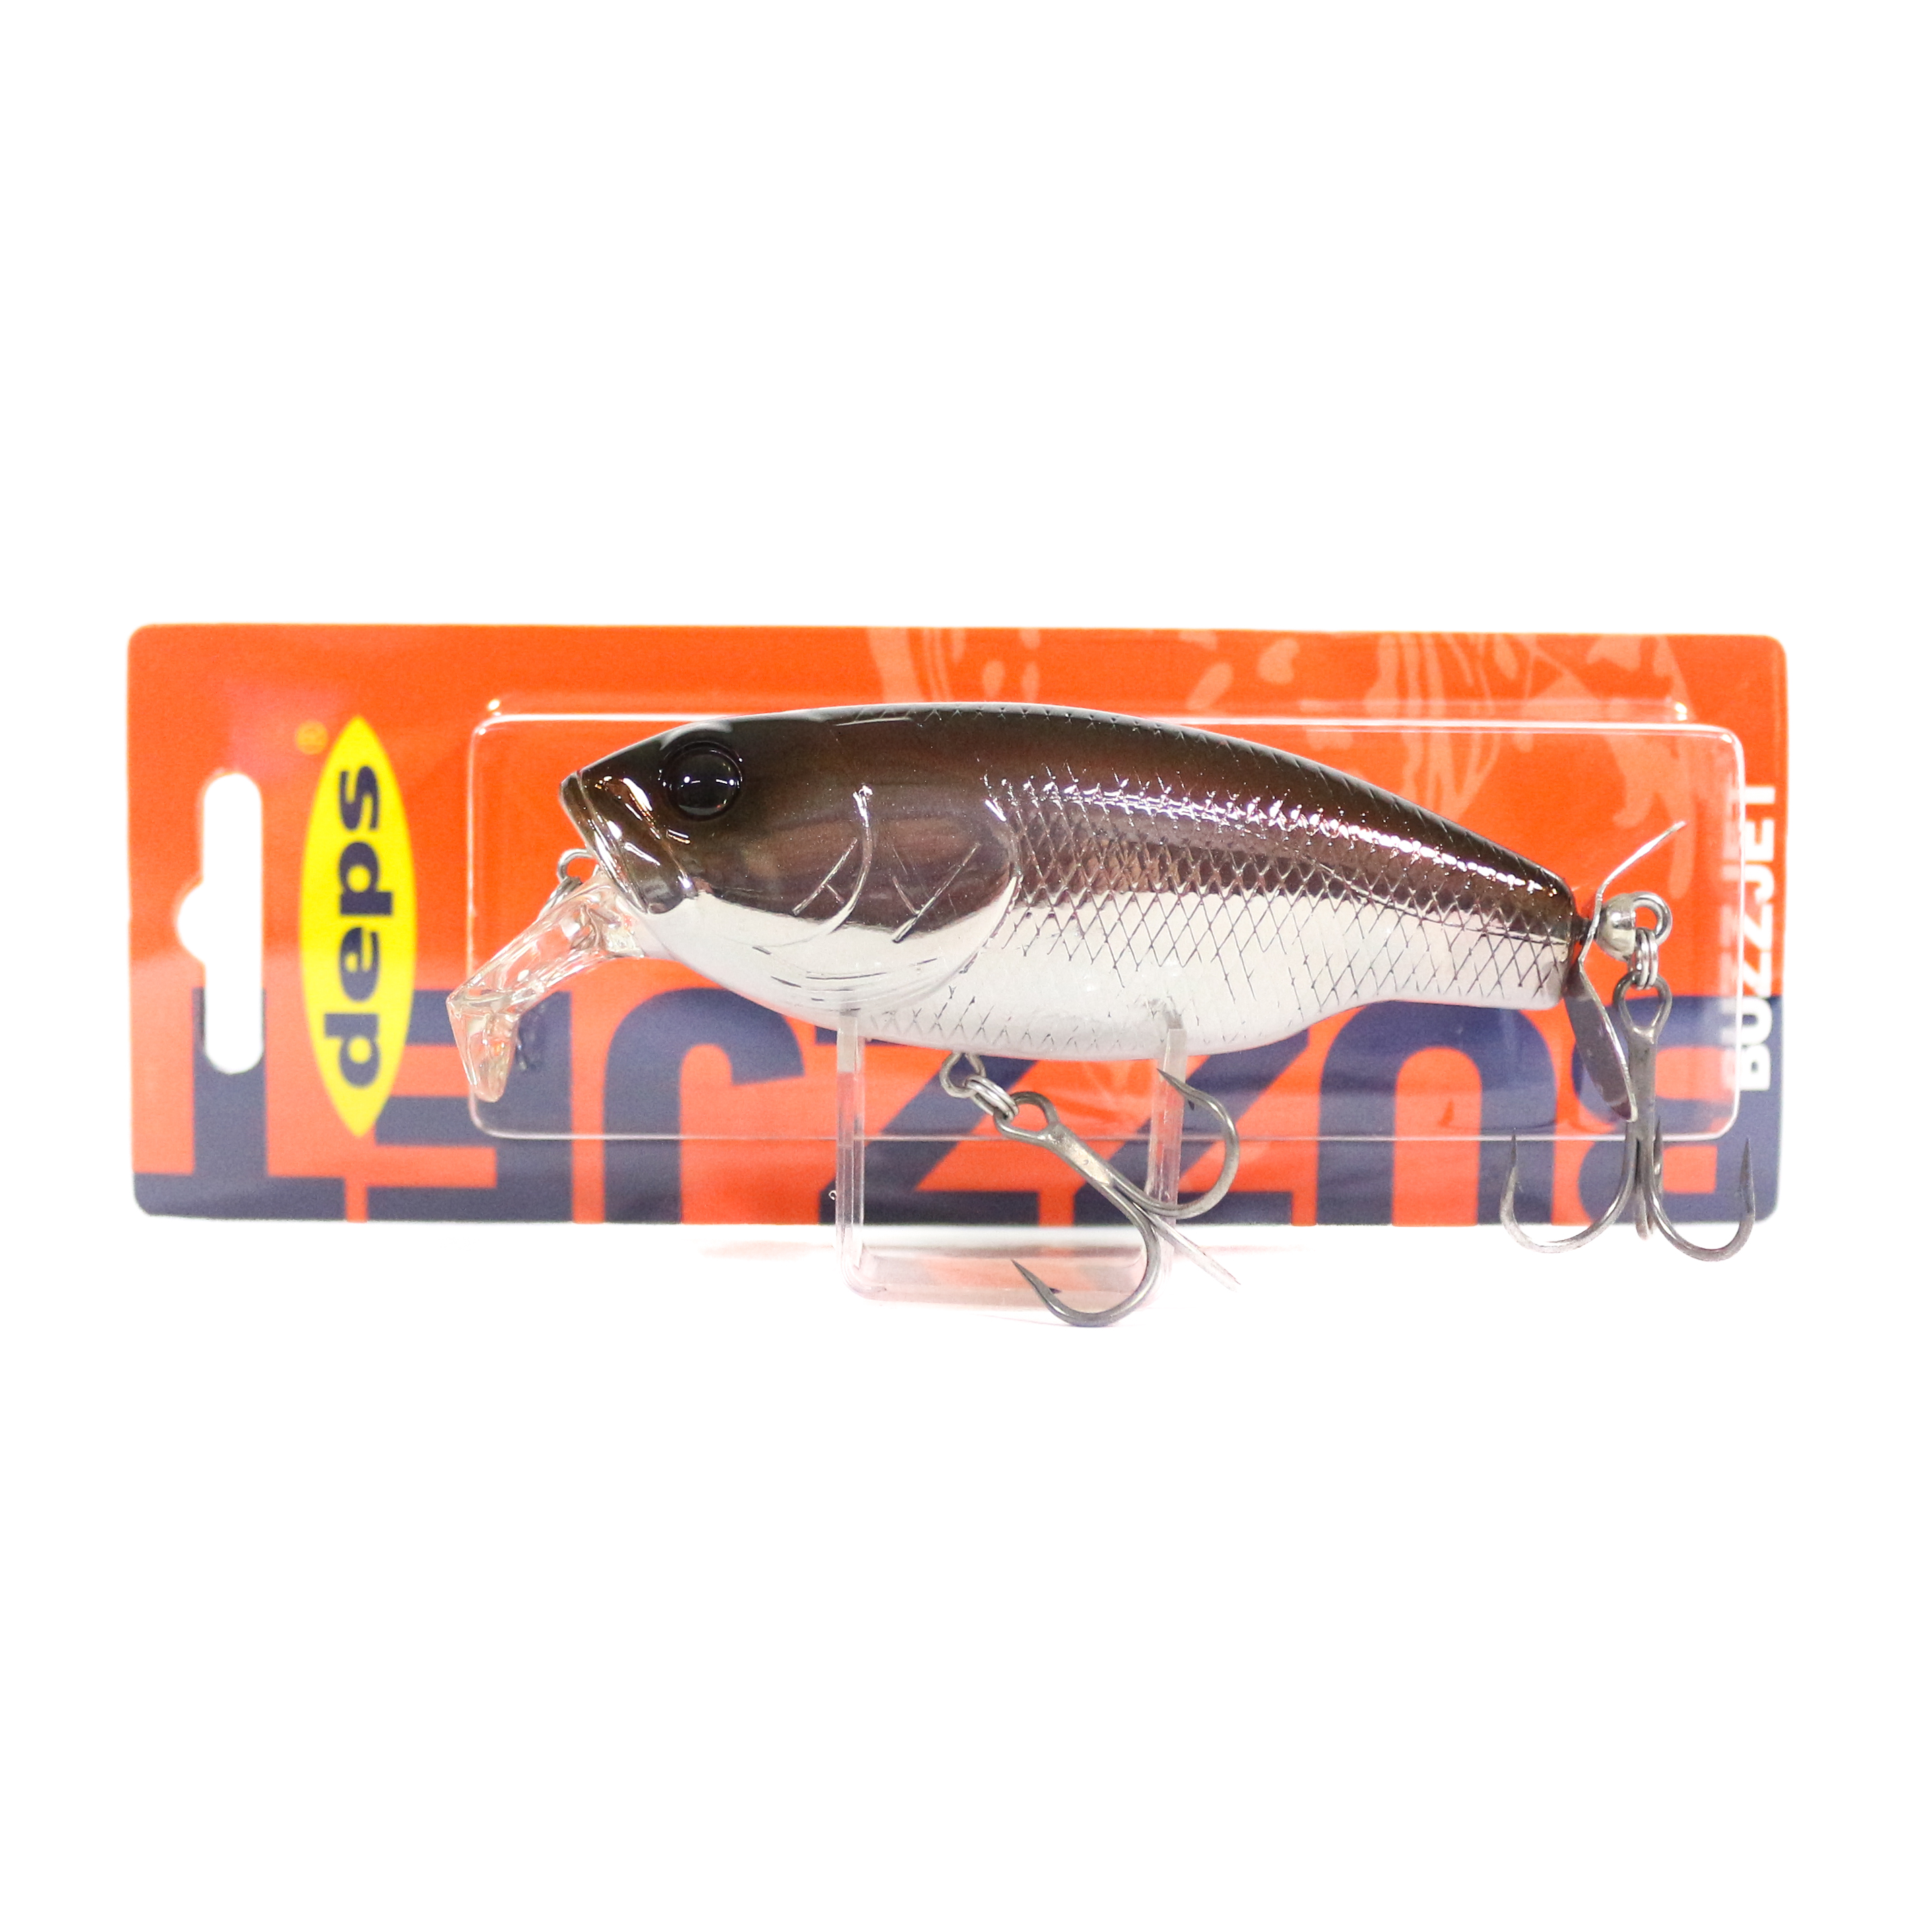 Deps Buzz Jet Floating Lure 13 (0134)